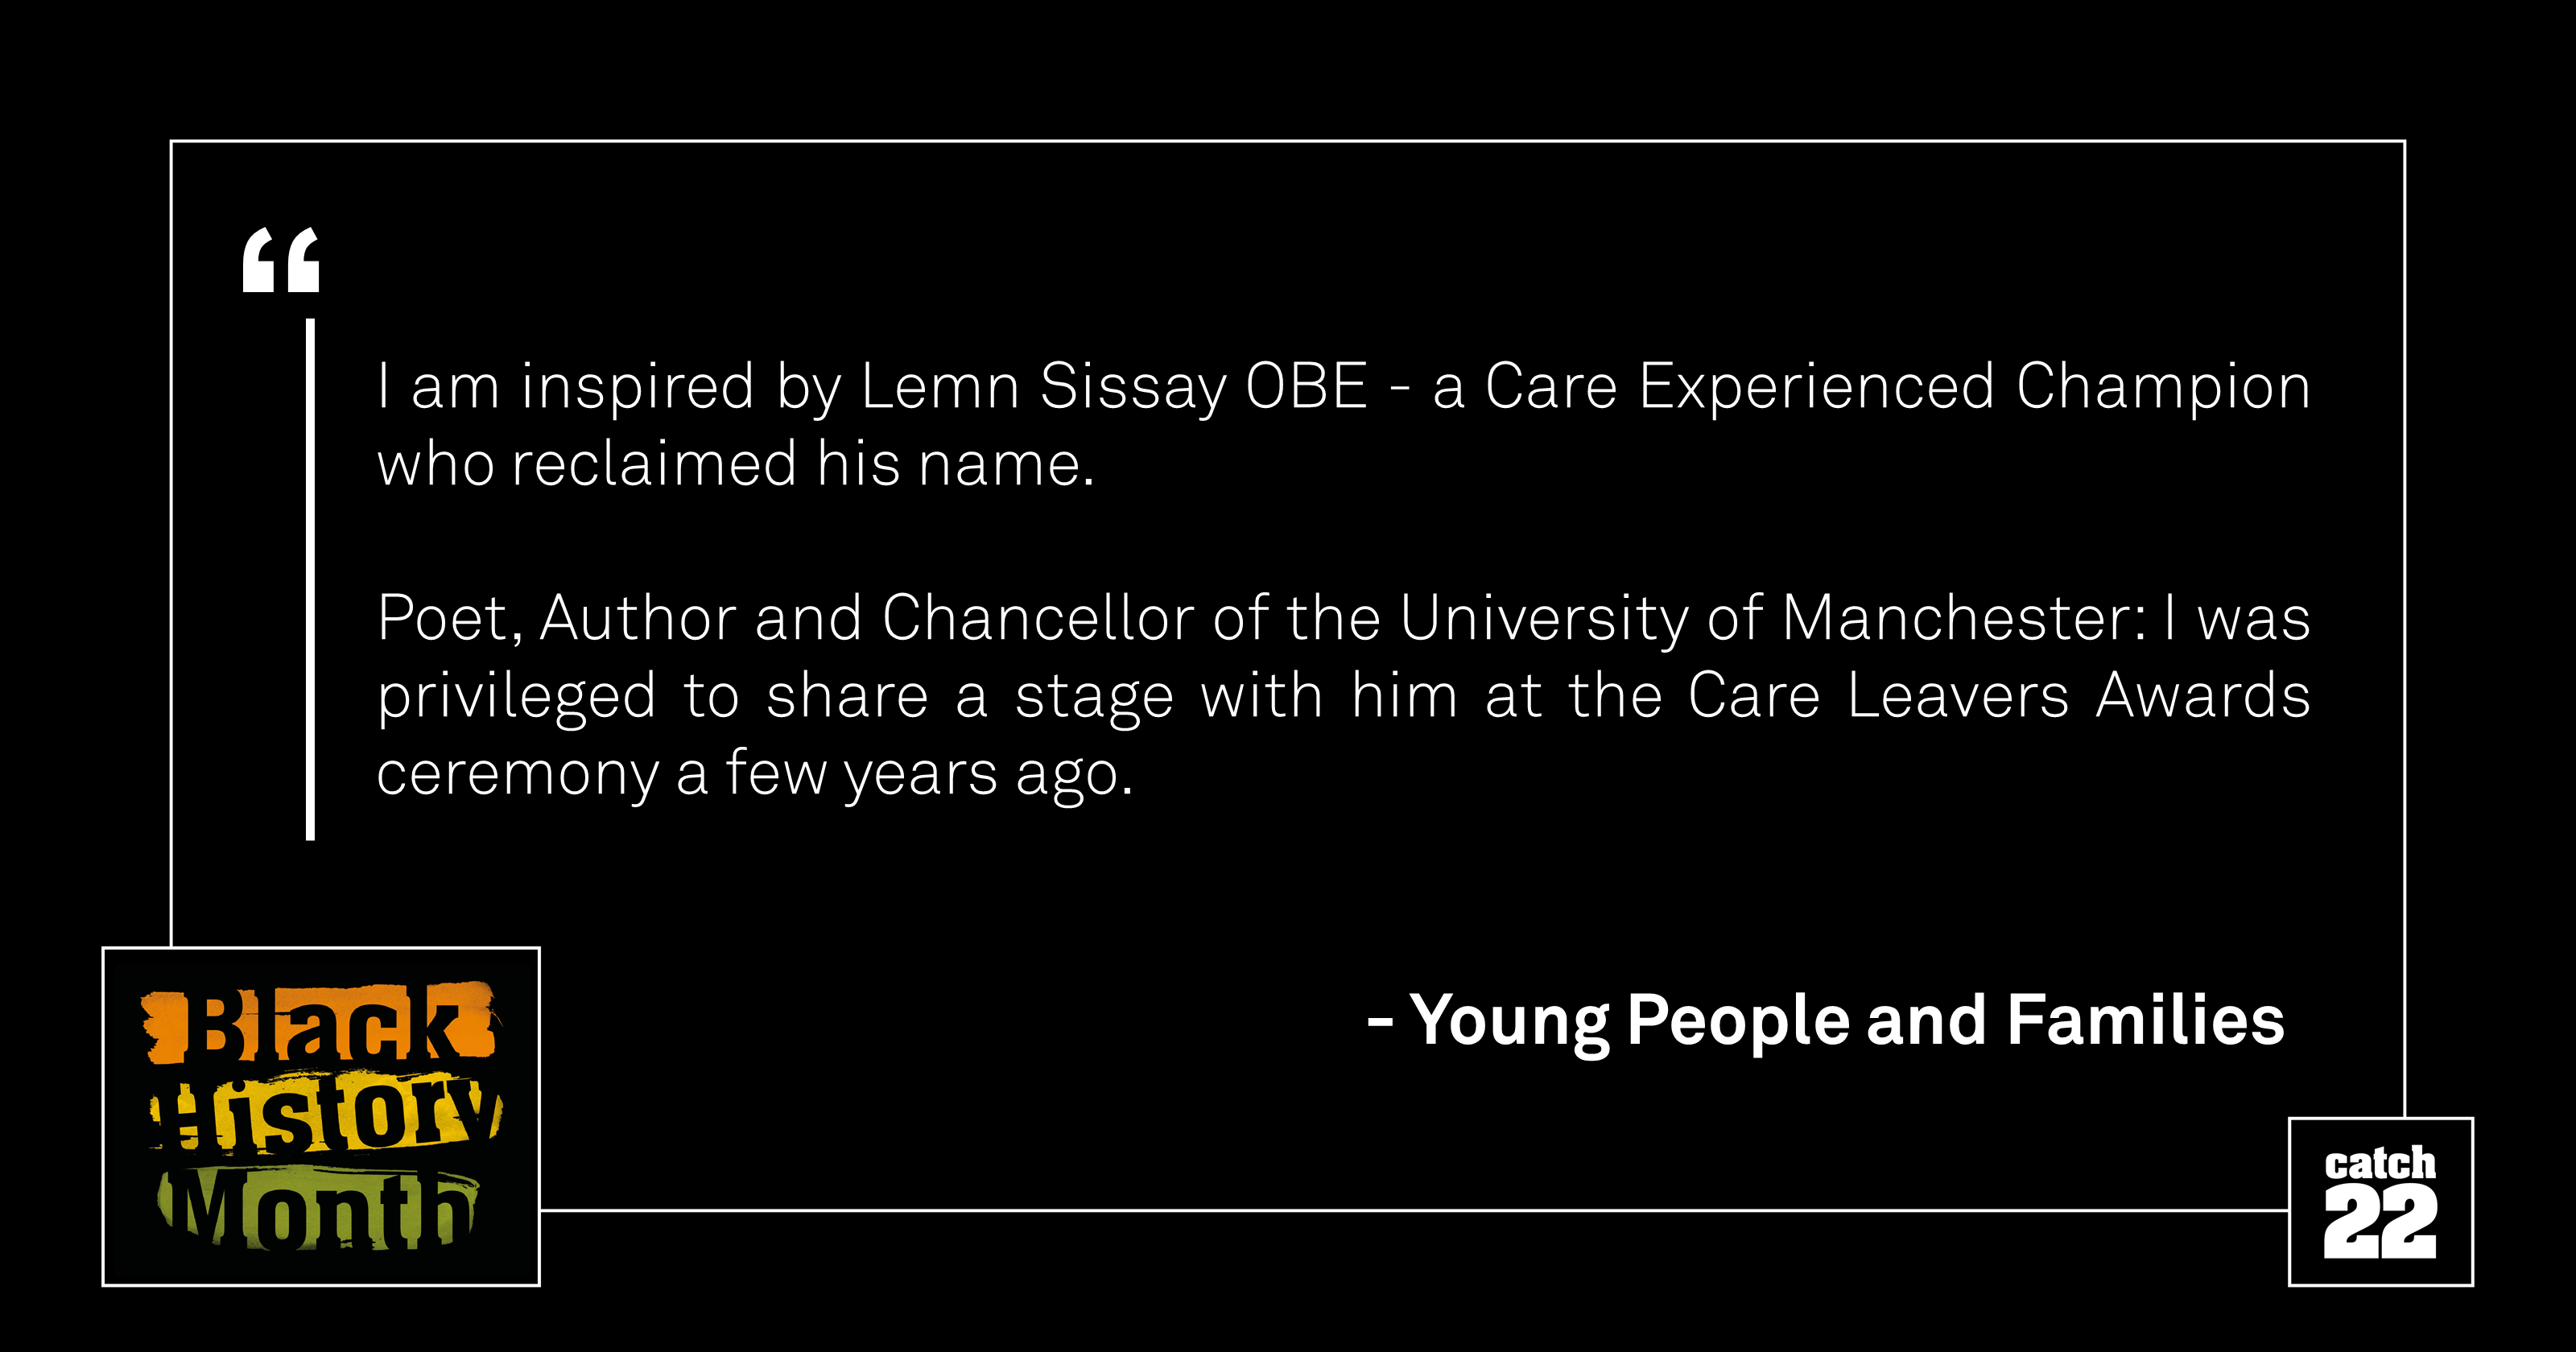 I am inspired by Lemn Sissay OBE - a Care Experienced Champion who reclaimed his name. Poet, Author and Chancellor of the University of Manchester: I was privileged to share a stage with him at the Care Leavers Awards ceremony a few years ago.